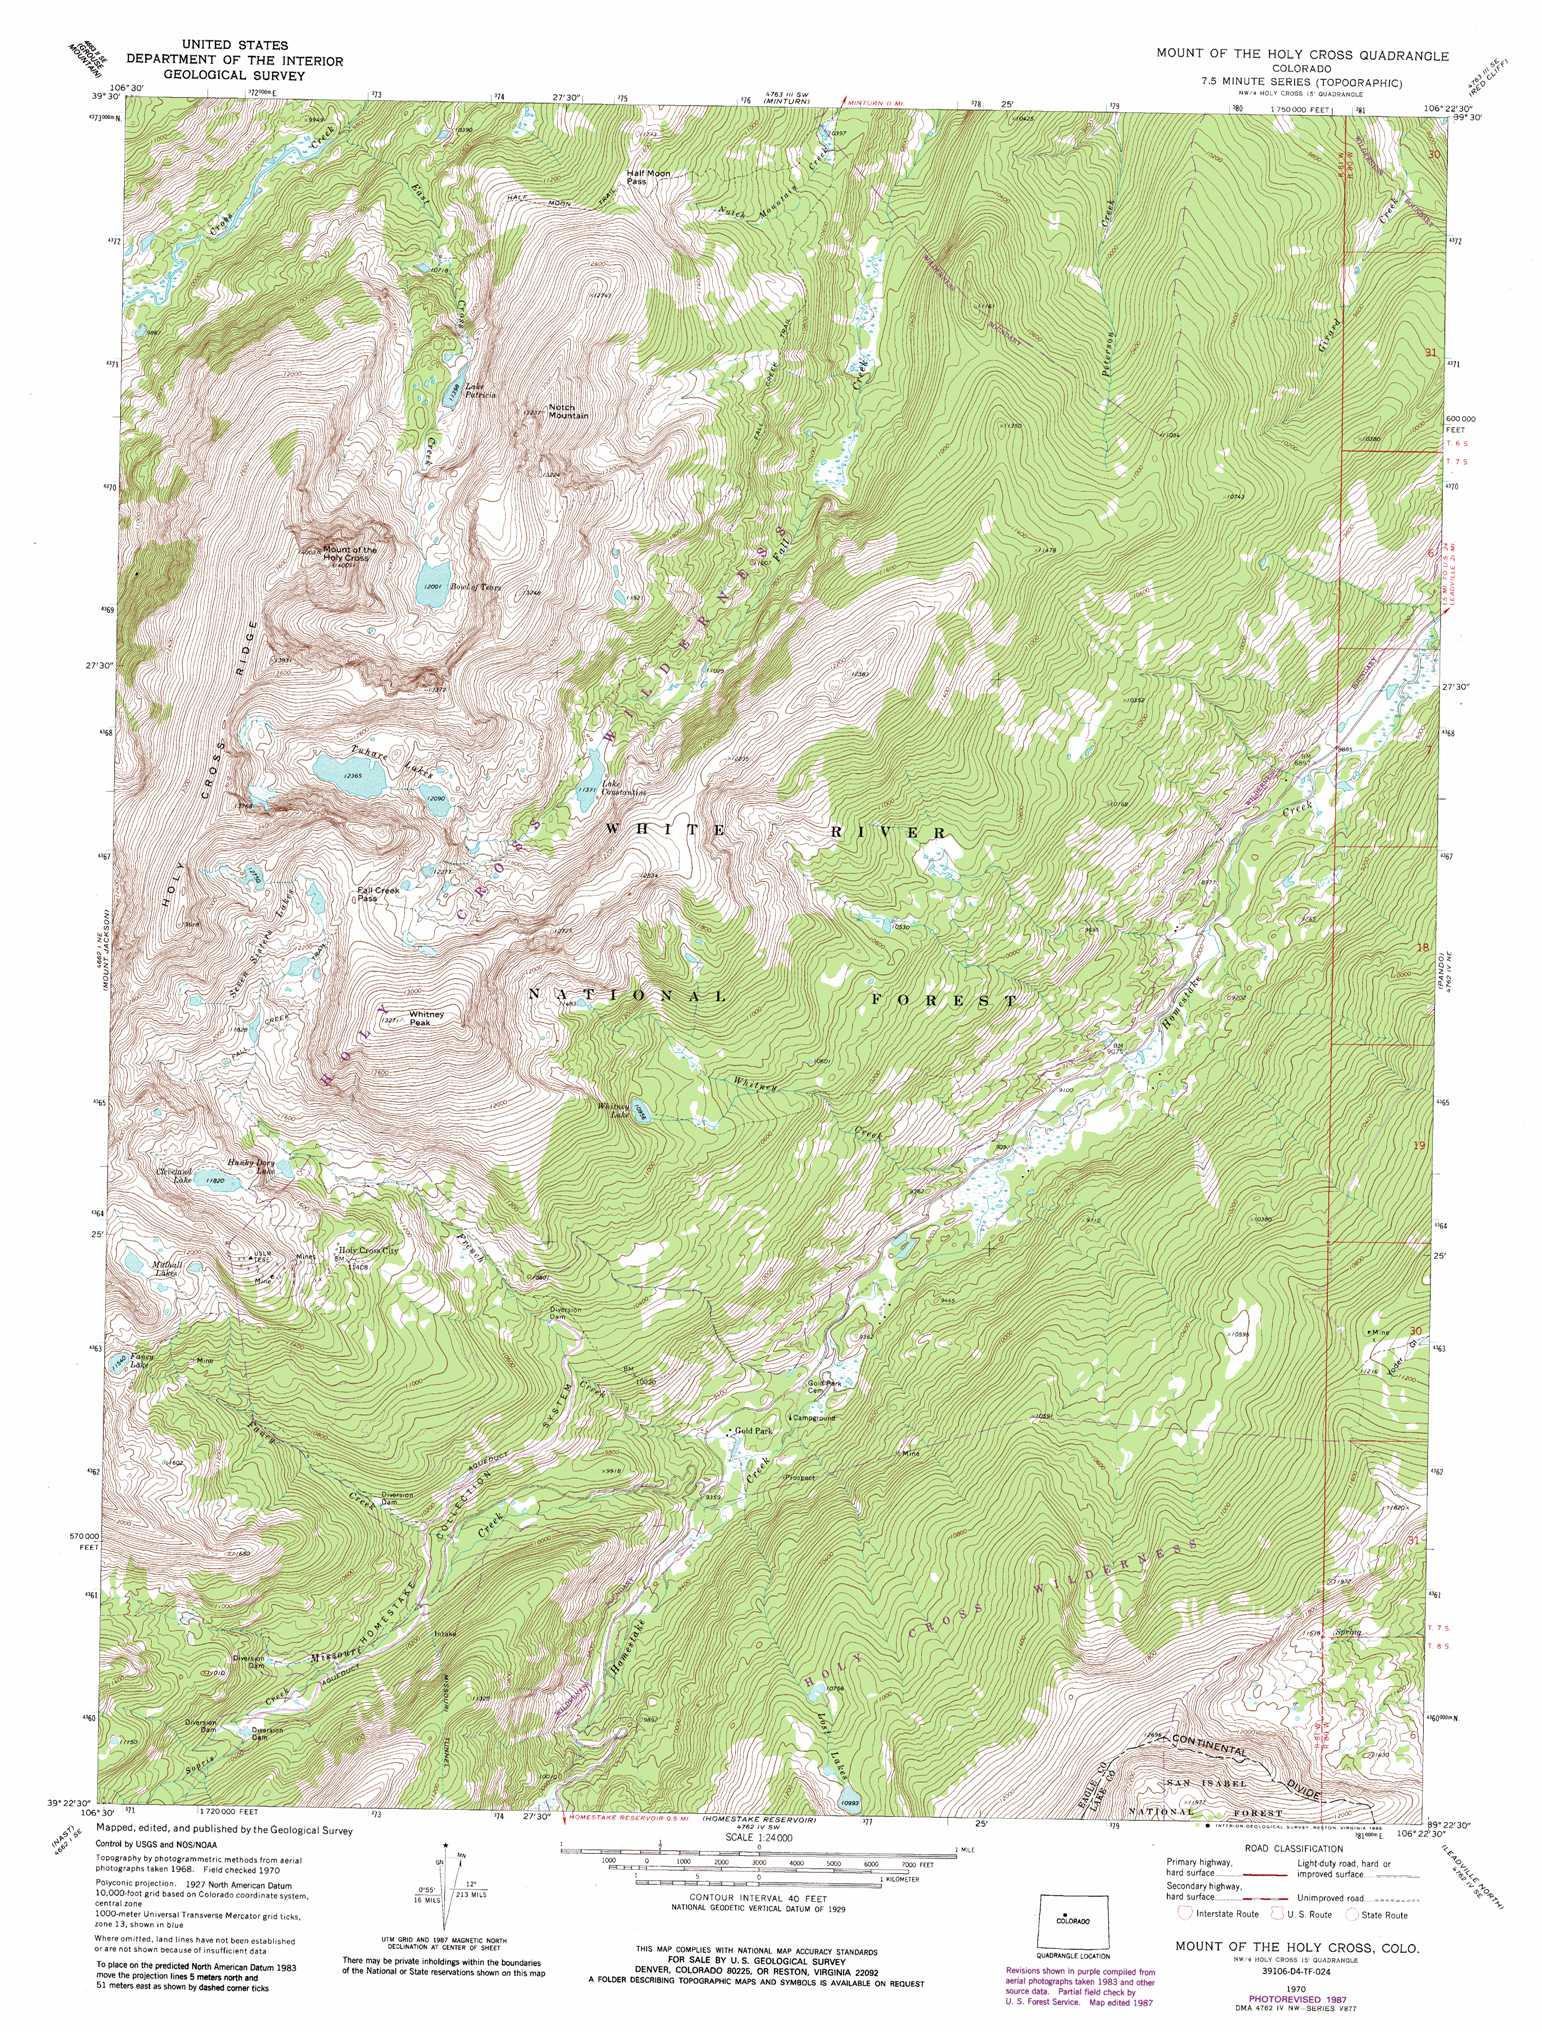 Mount Of The Holy Cross topographic map, CO - USGS Topo Quad 39106d4